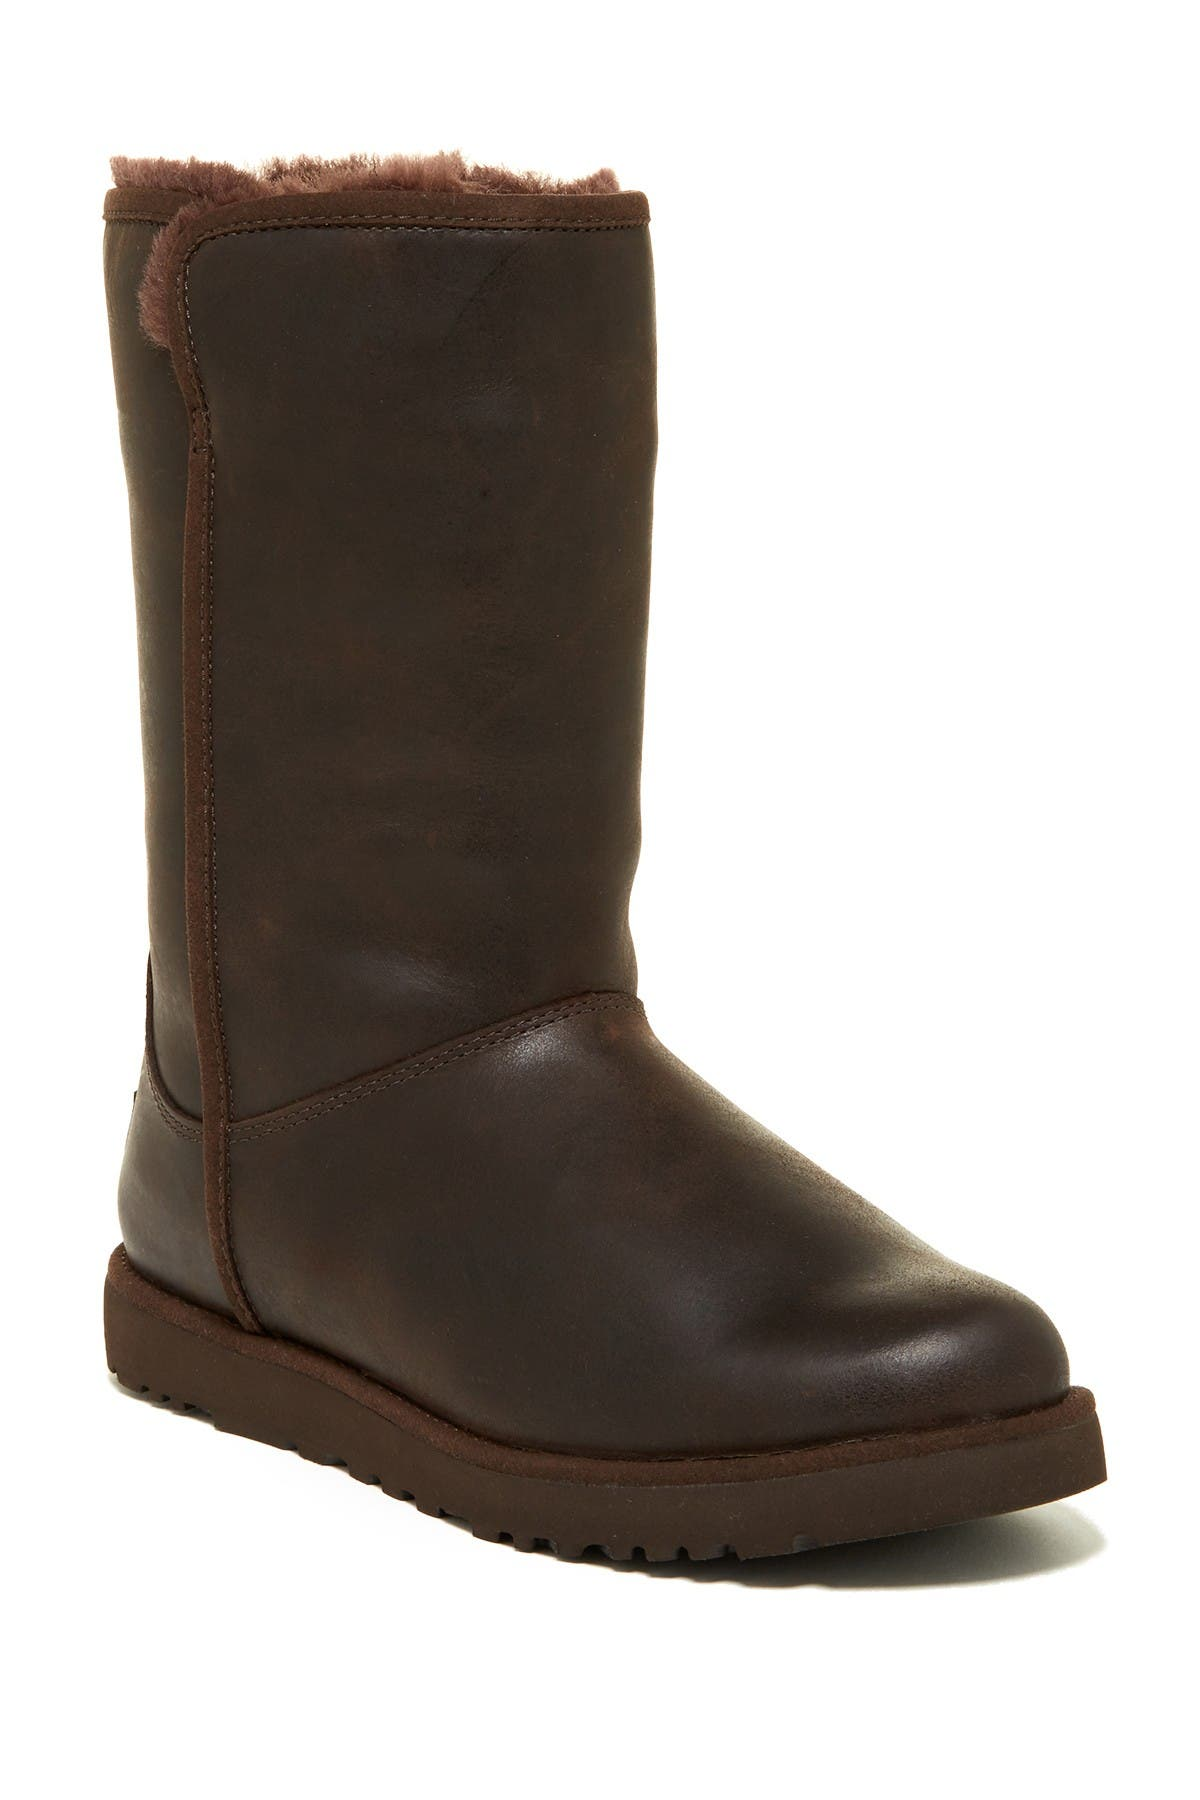 UGG | Michelle Leather Shearling Boot